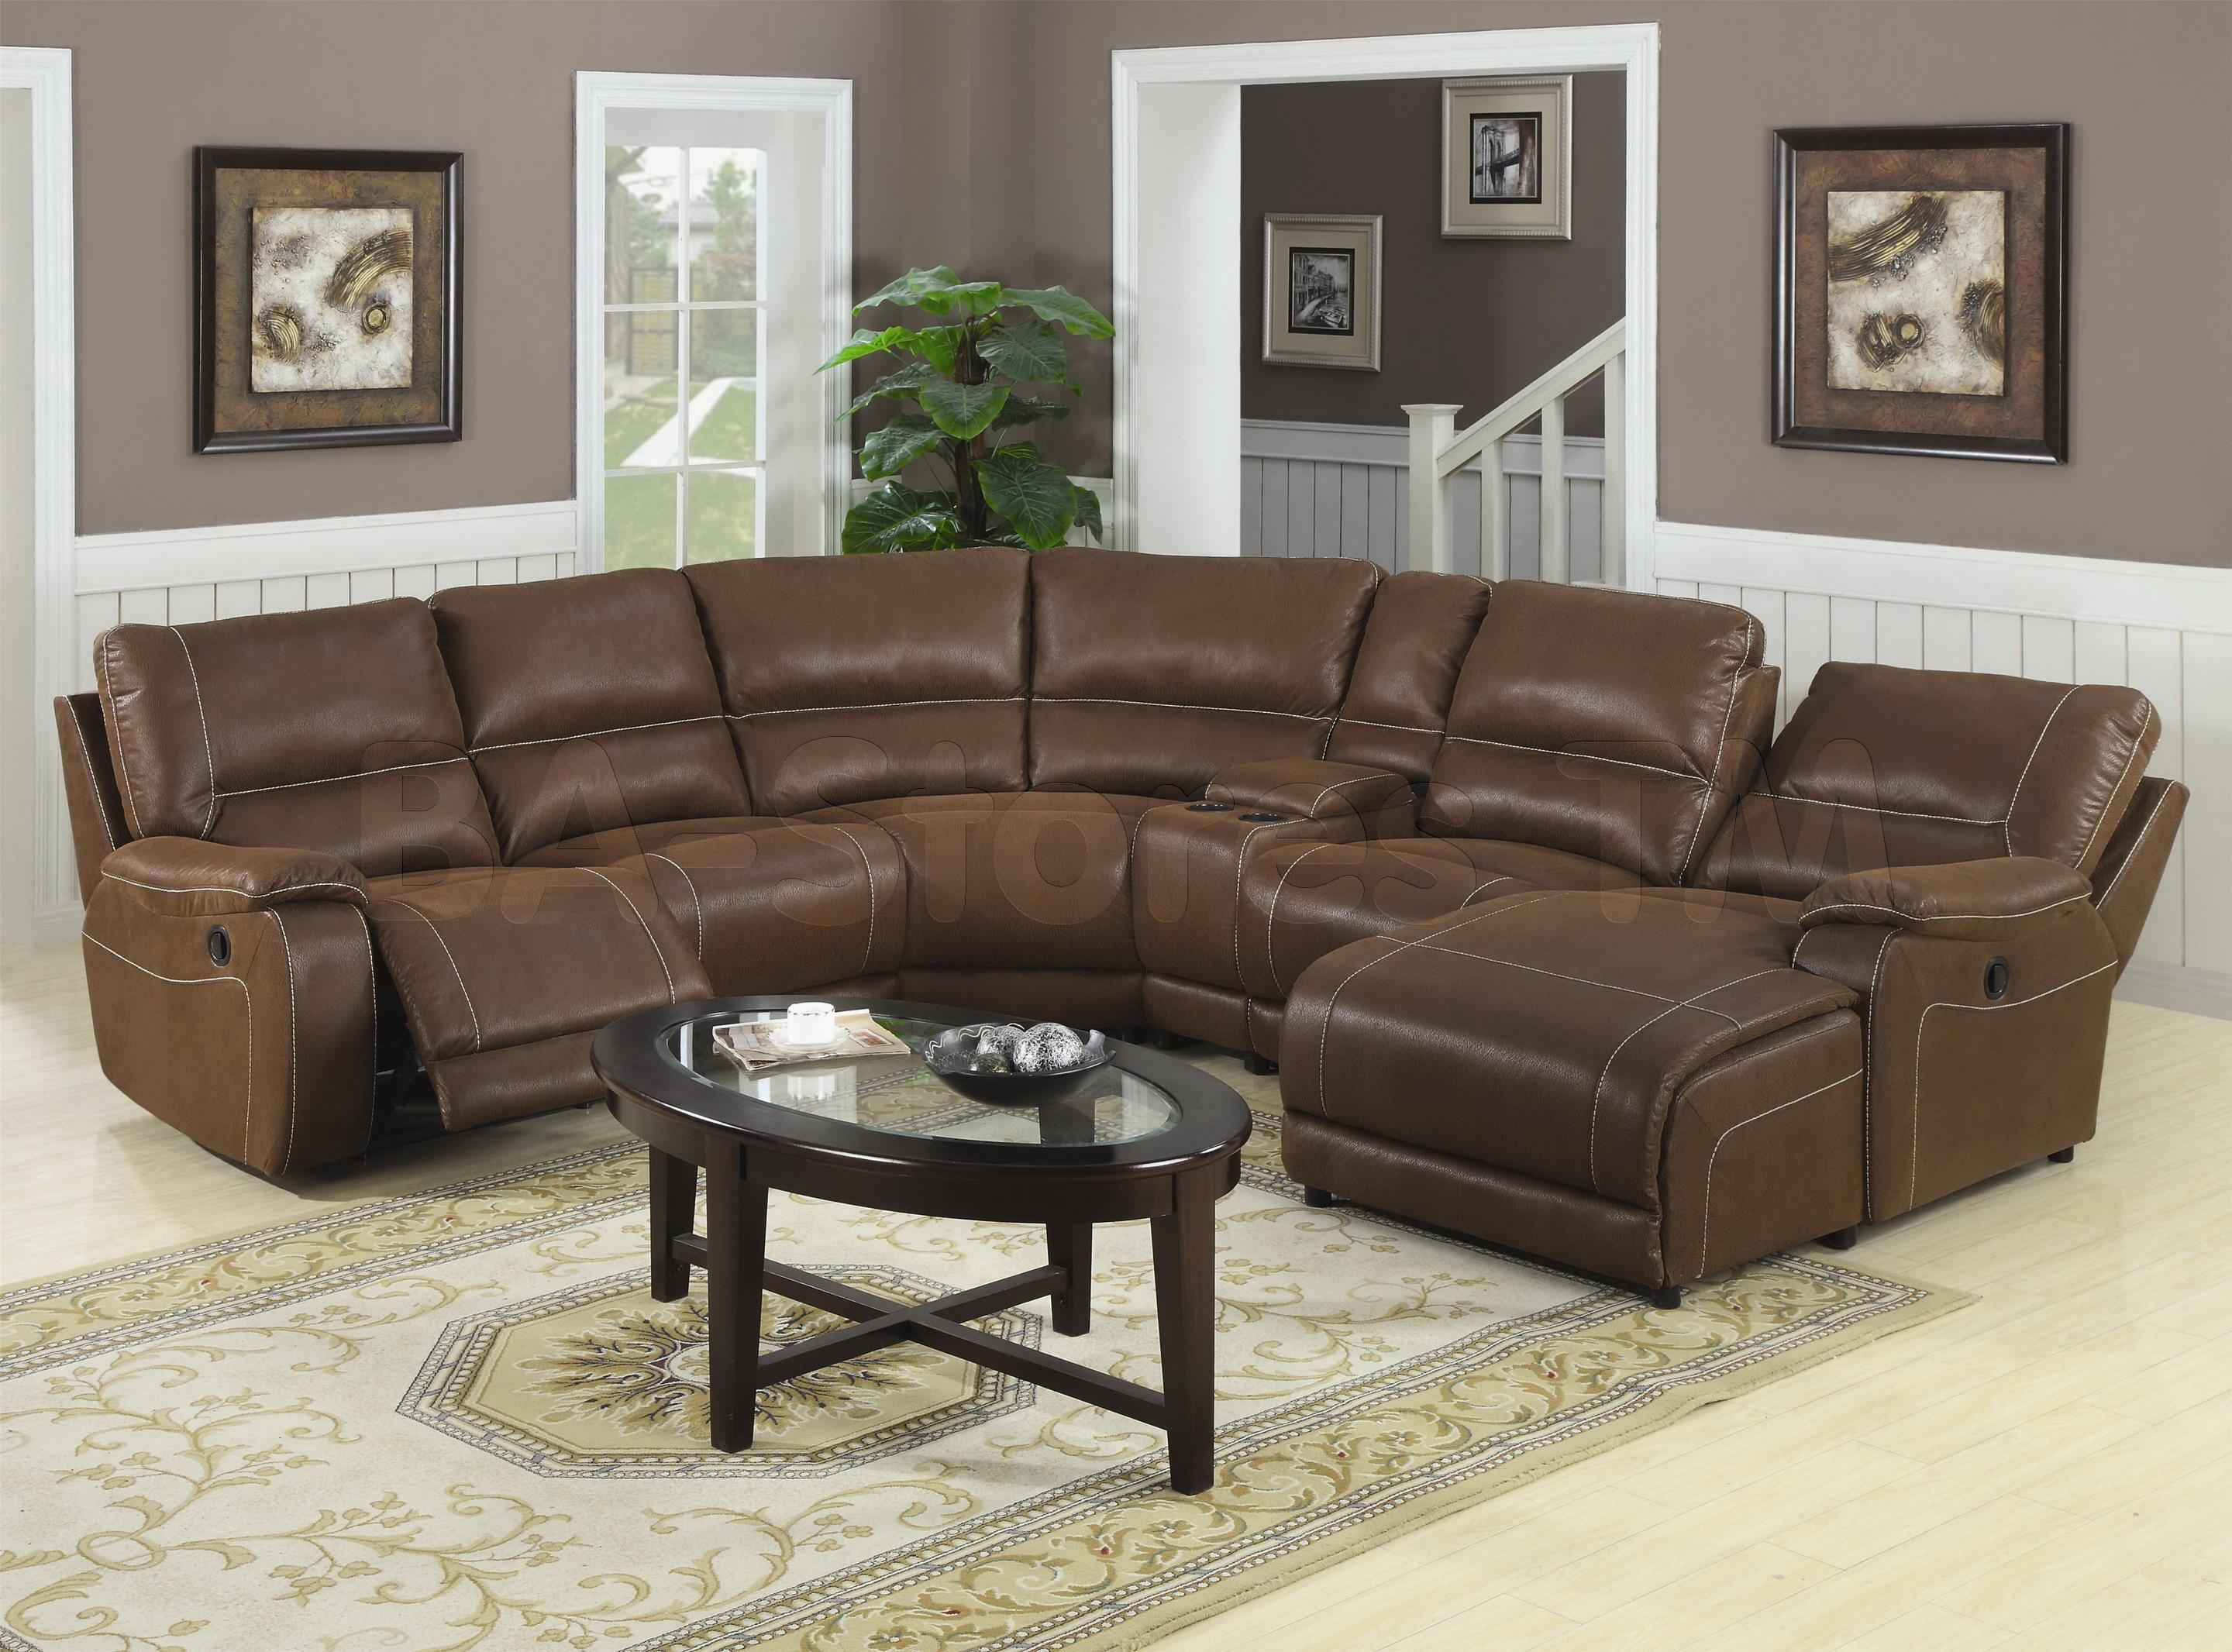 Curved Sectional Sofa With Recliner | Tehranmix Decoration For Curved Sectional Sofas With Recliner (Image 6 of 20)